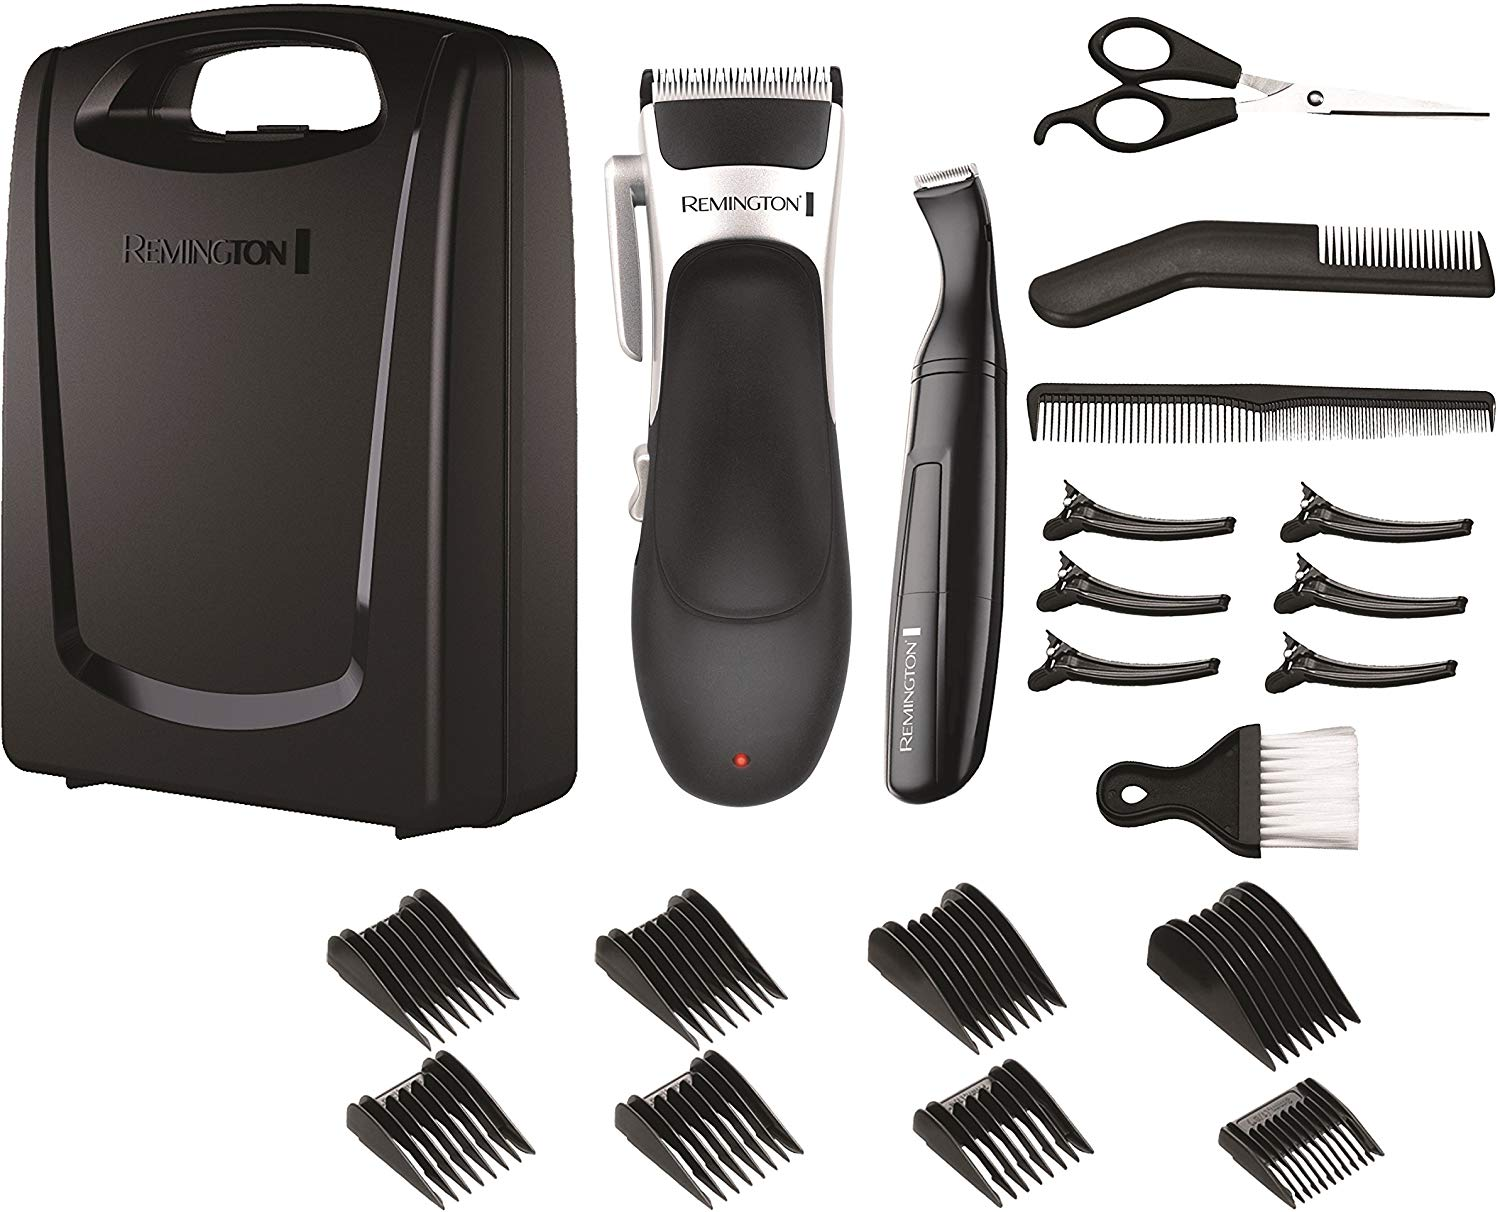 Remington Stylist Hair Clippers 25 Piece Grooming Kit for £19.32